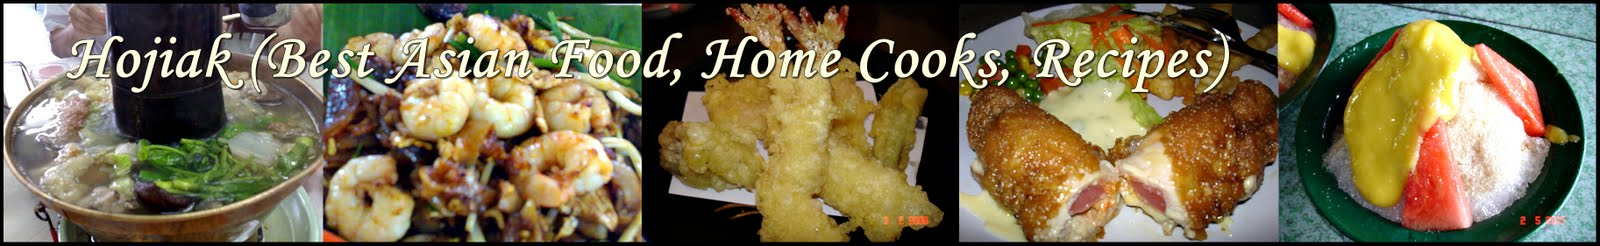 Ho Jiak (Best Asian Food, Home Cooks, Recipes)